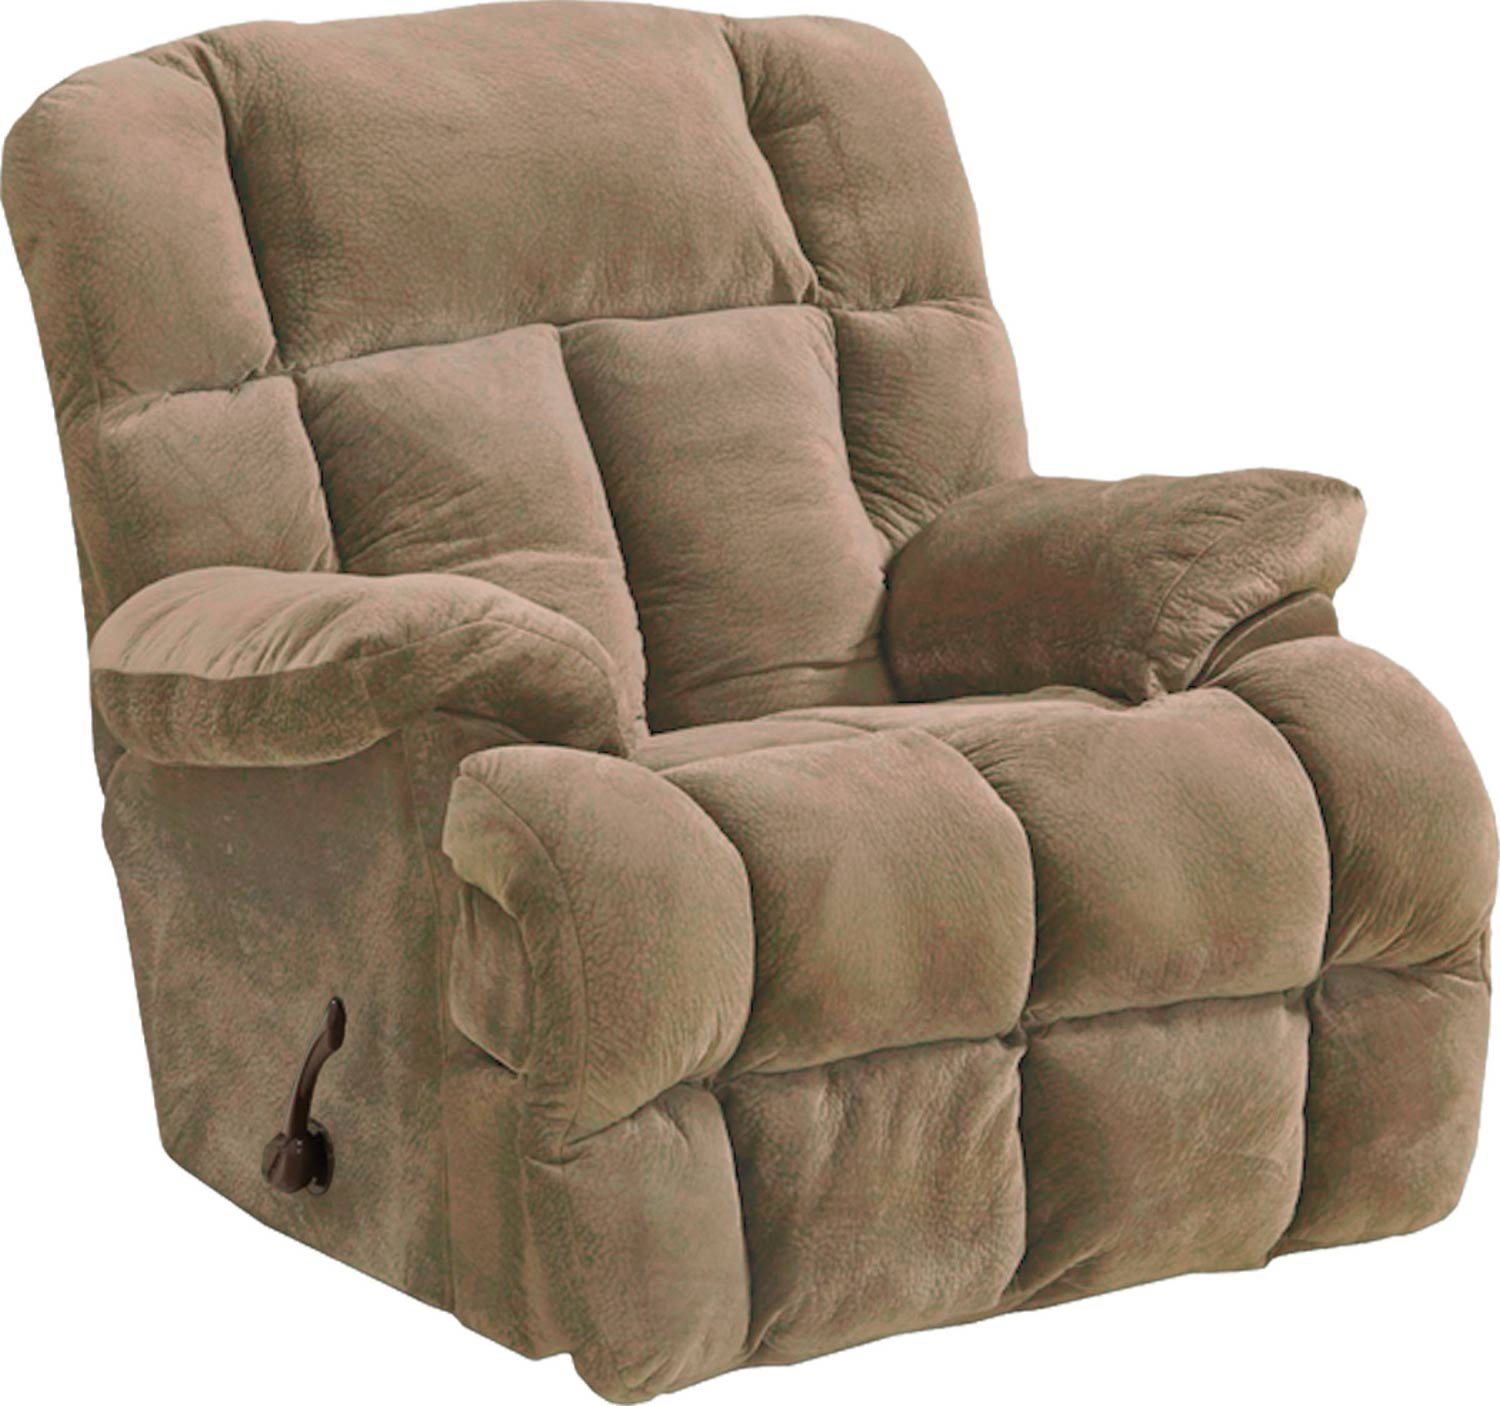 CatNapper Cloud 12 Power Recliner Chair - Camel